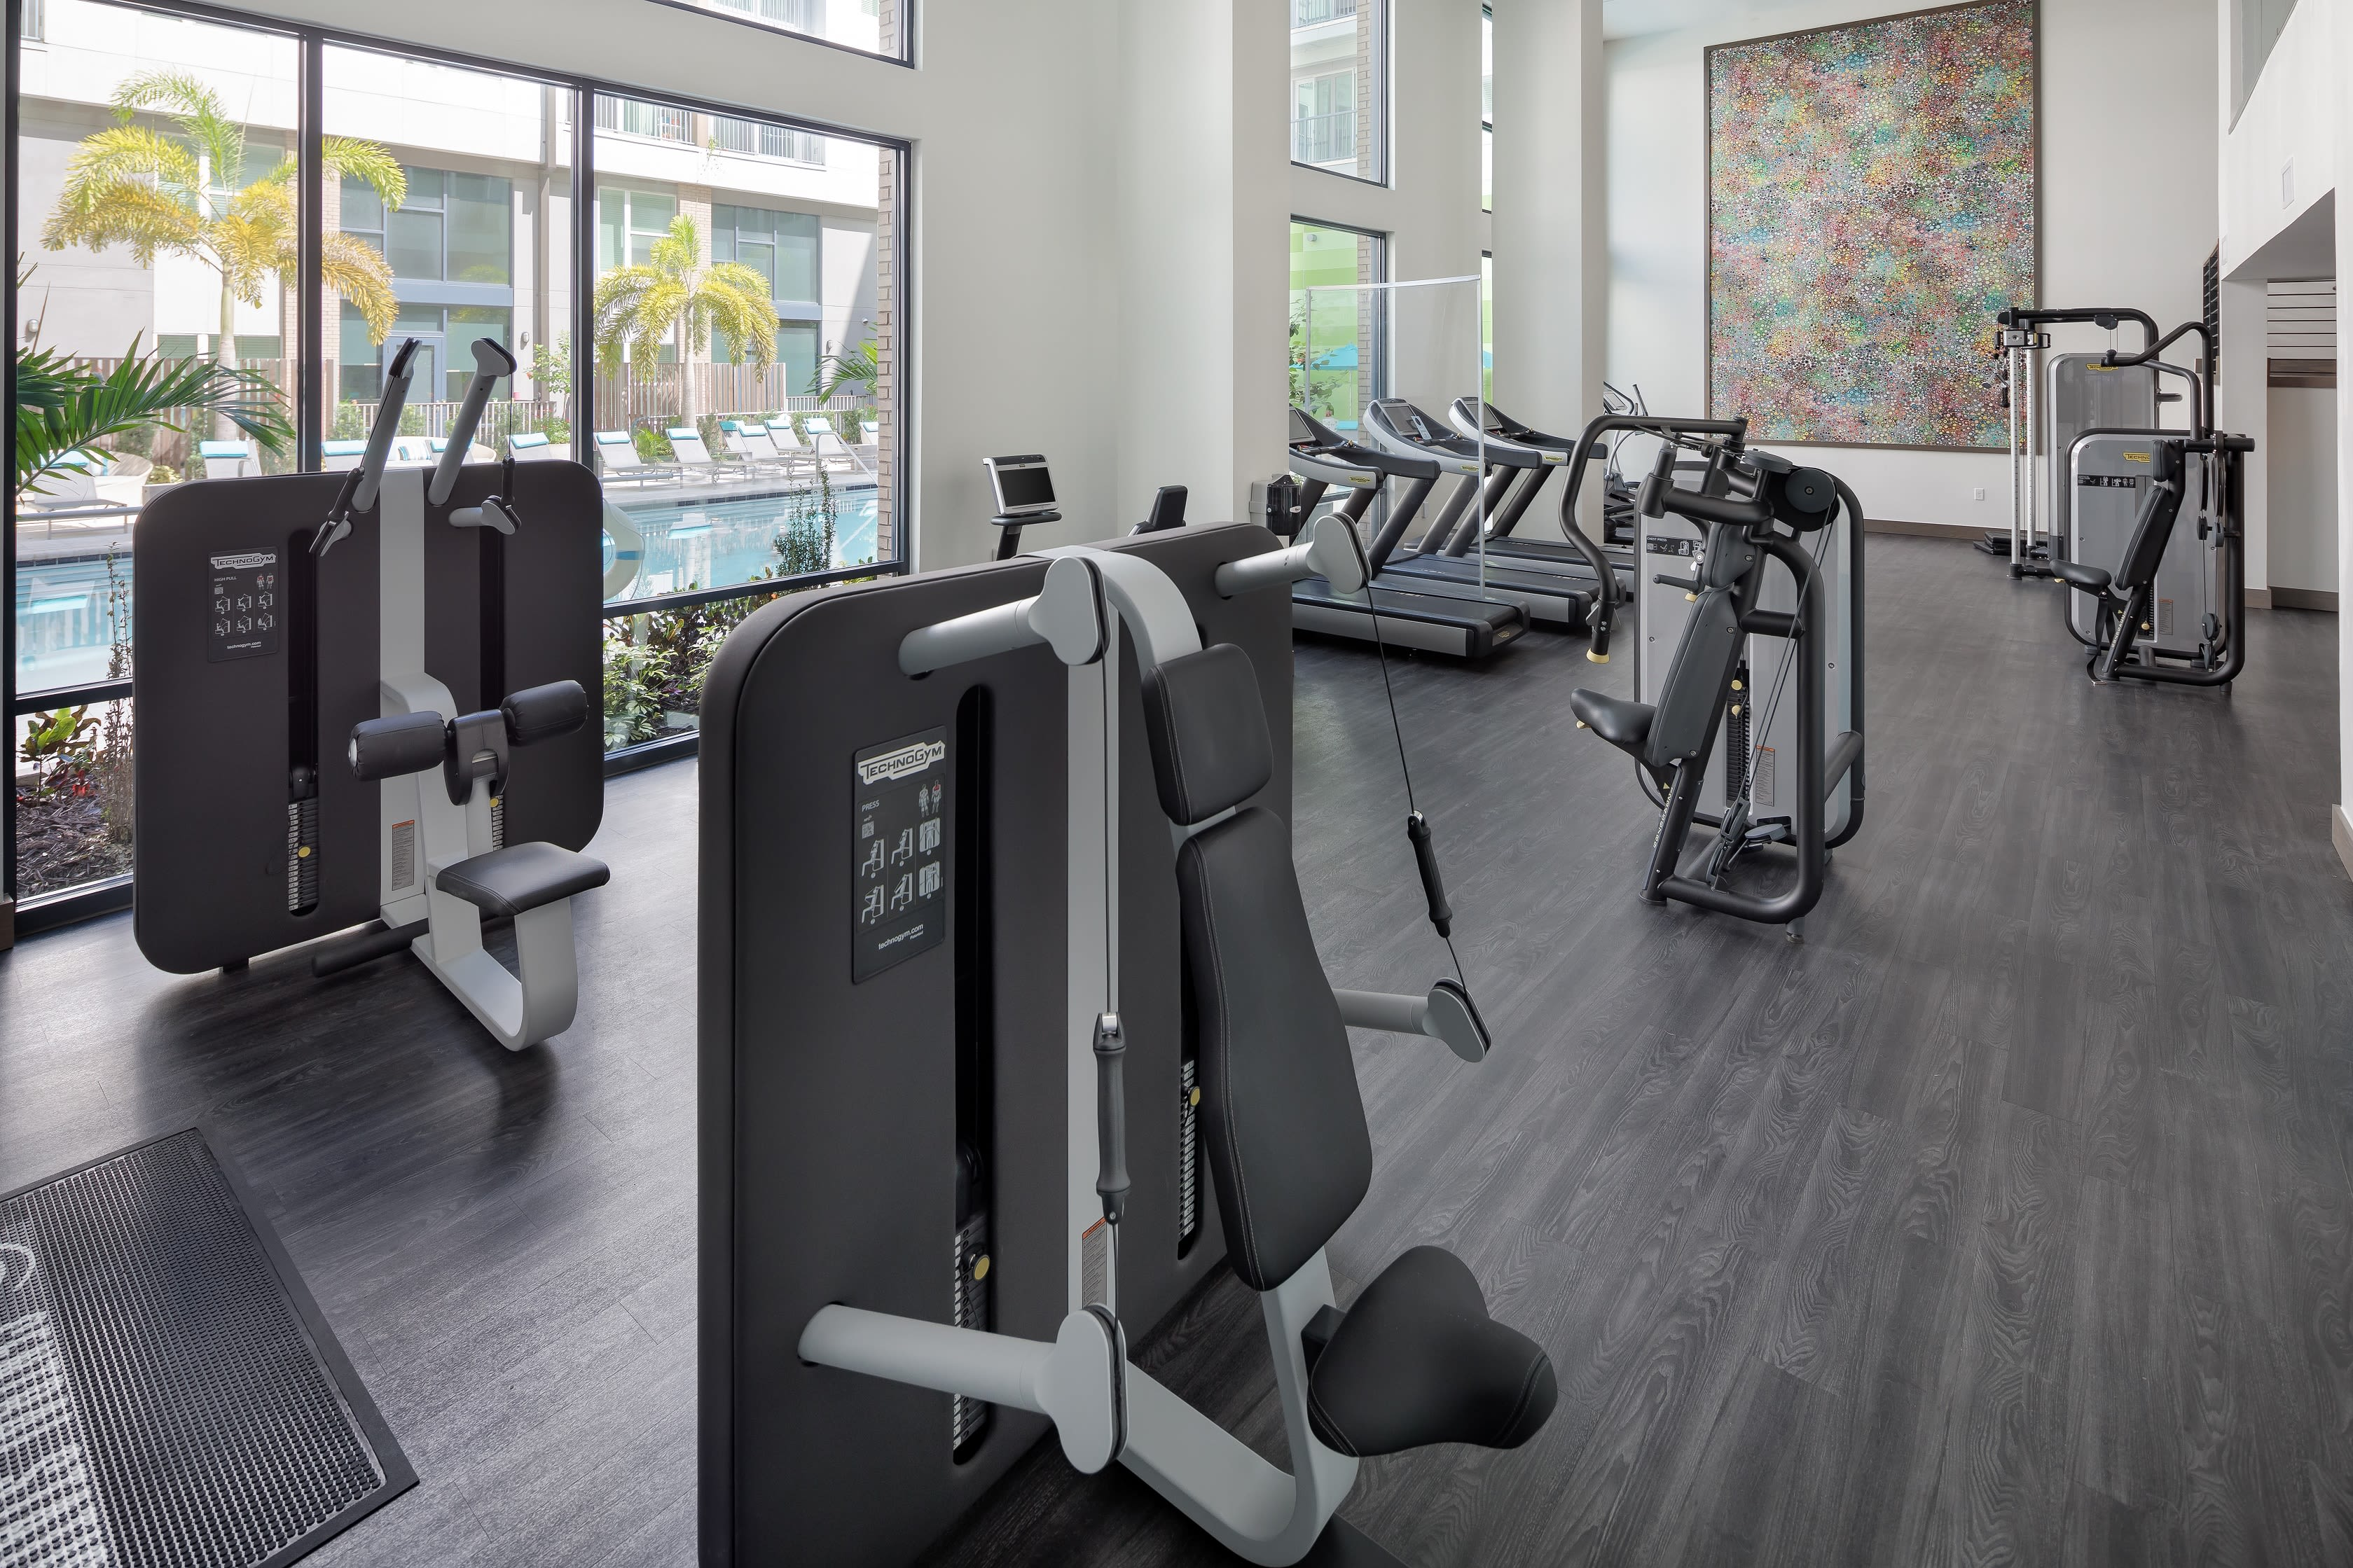 Fitness center in an apartment at Central Station on Orange in Orlando, Florida